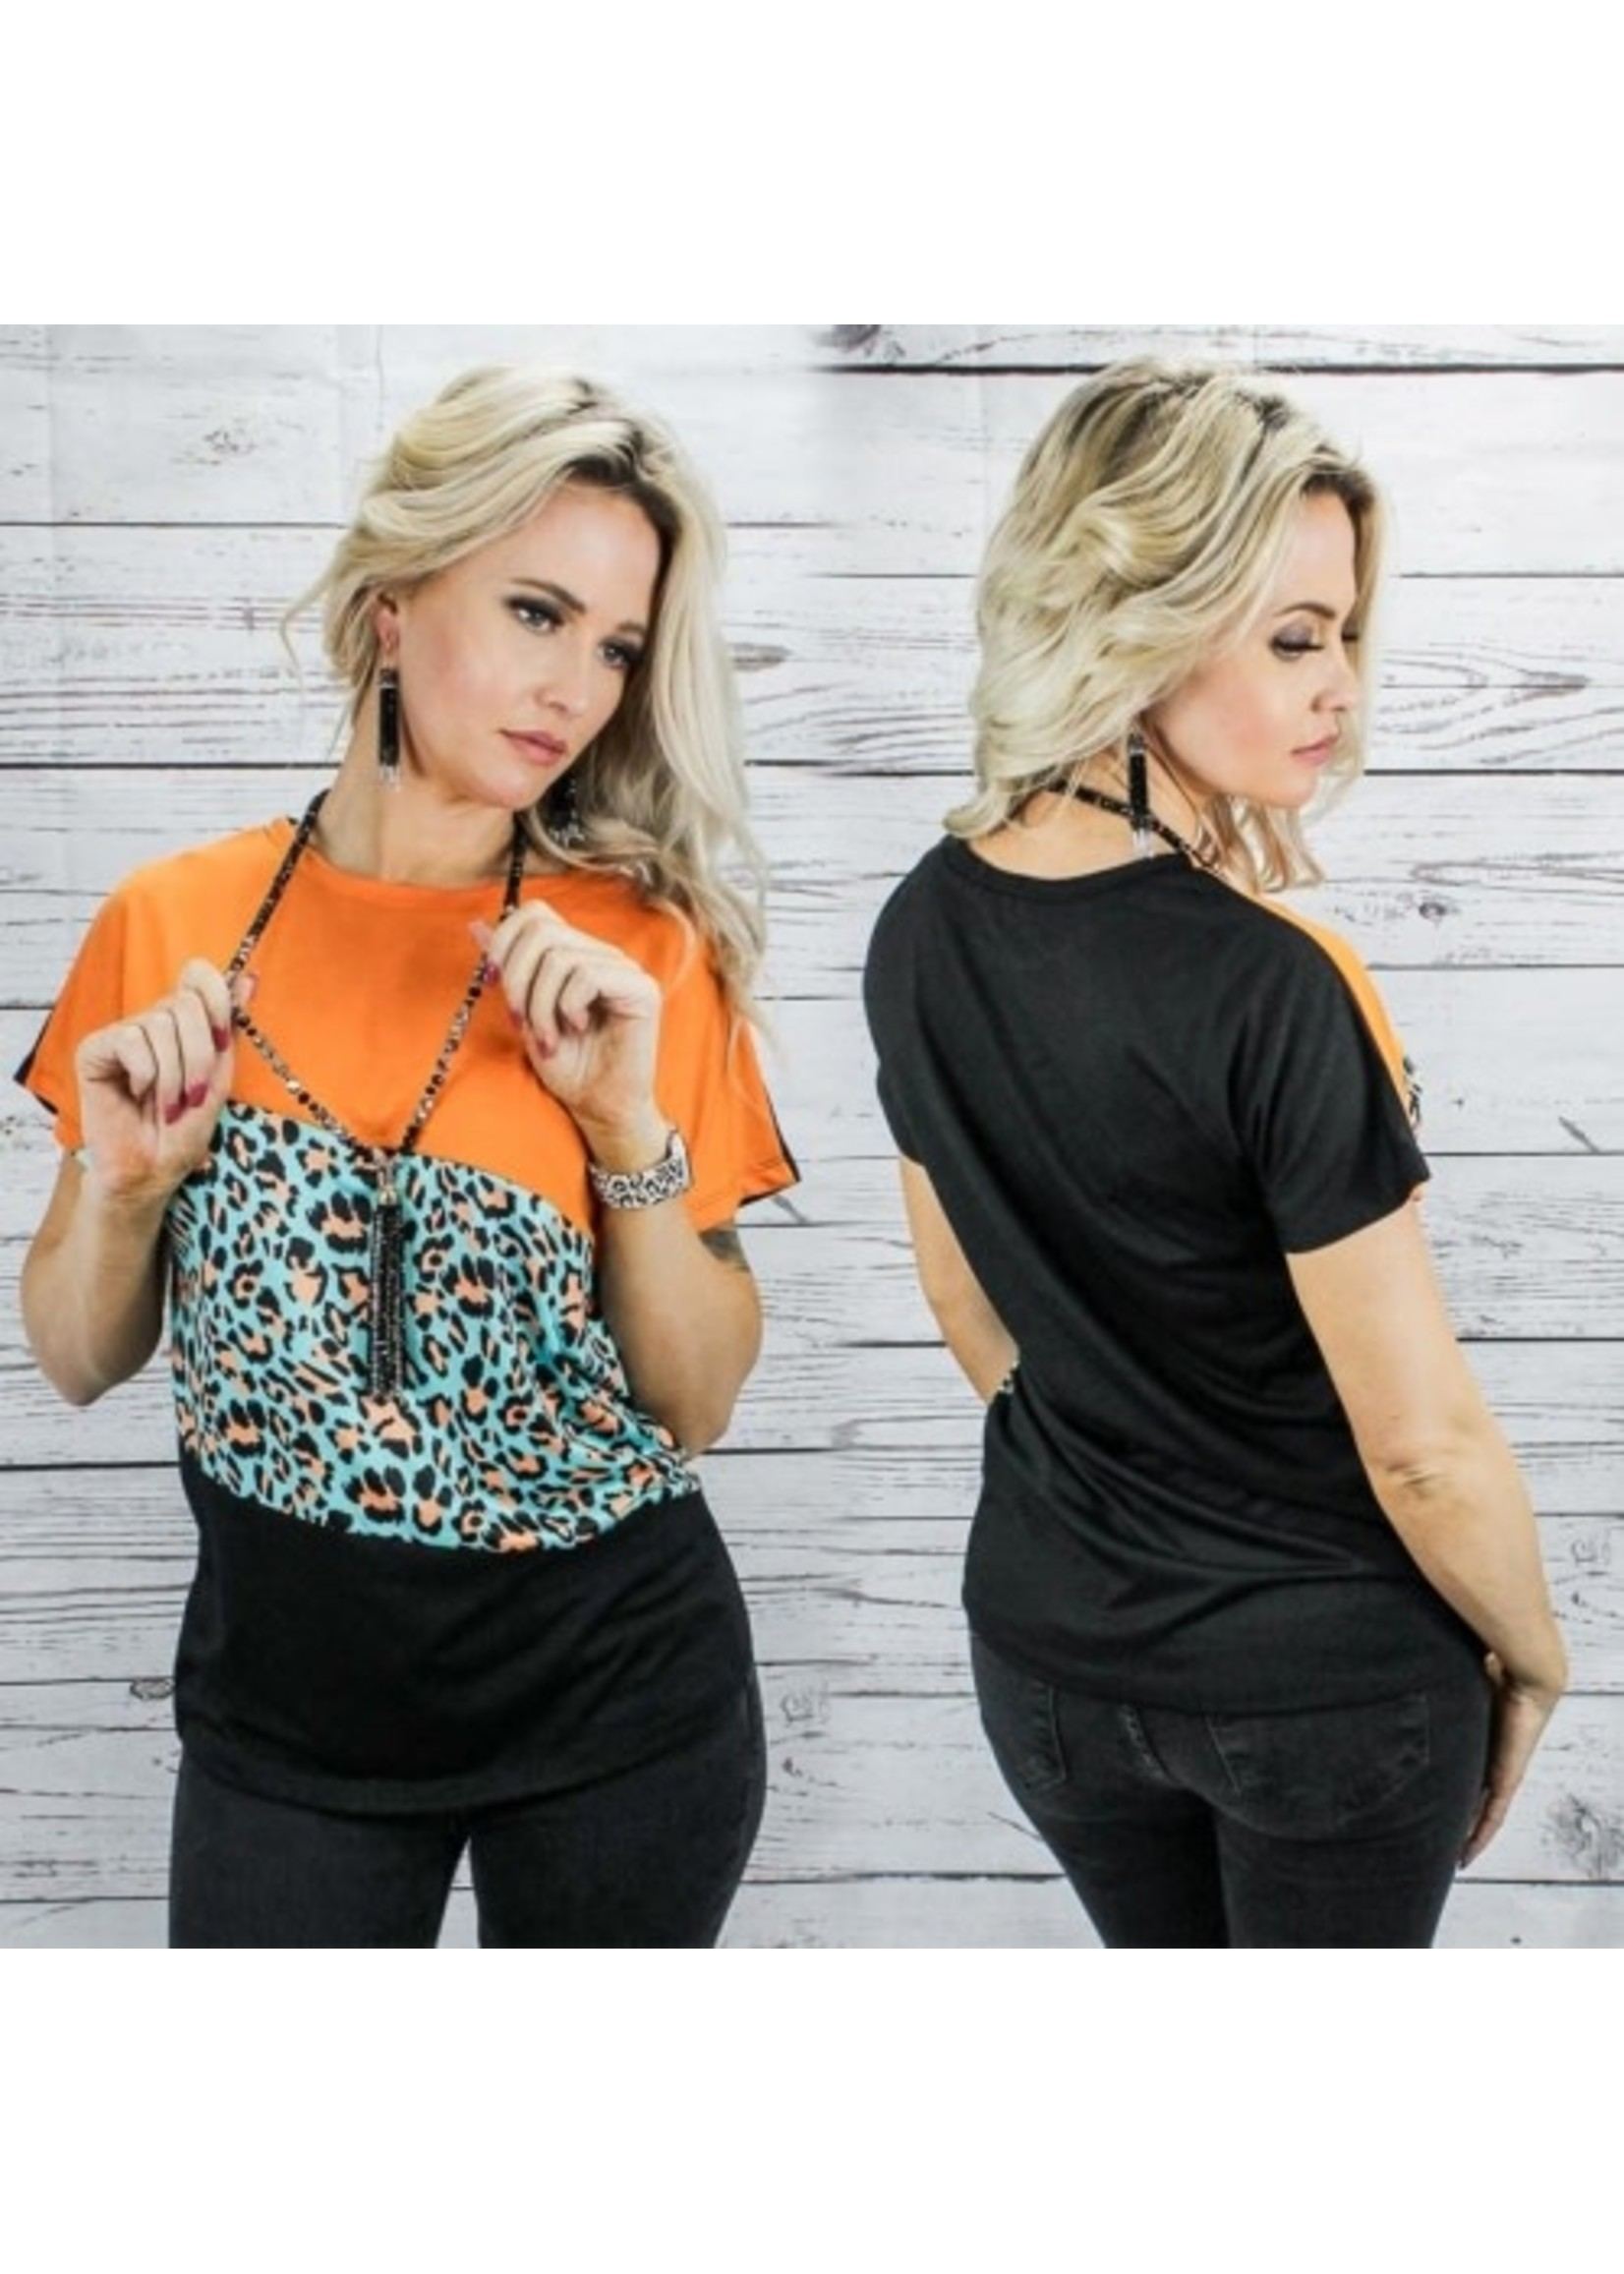 Sunshine & Rodeos Tri Color Half Sleeve Top with Leopard Print